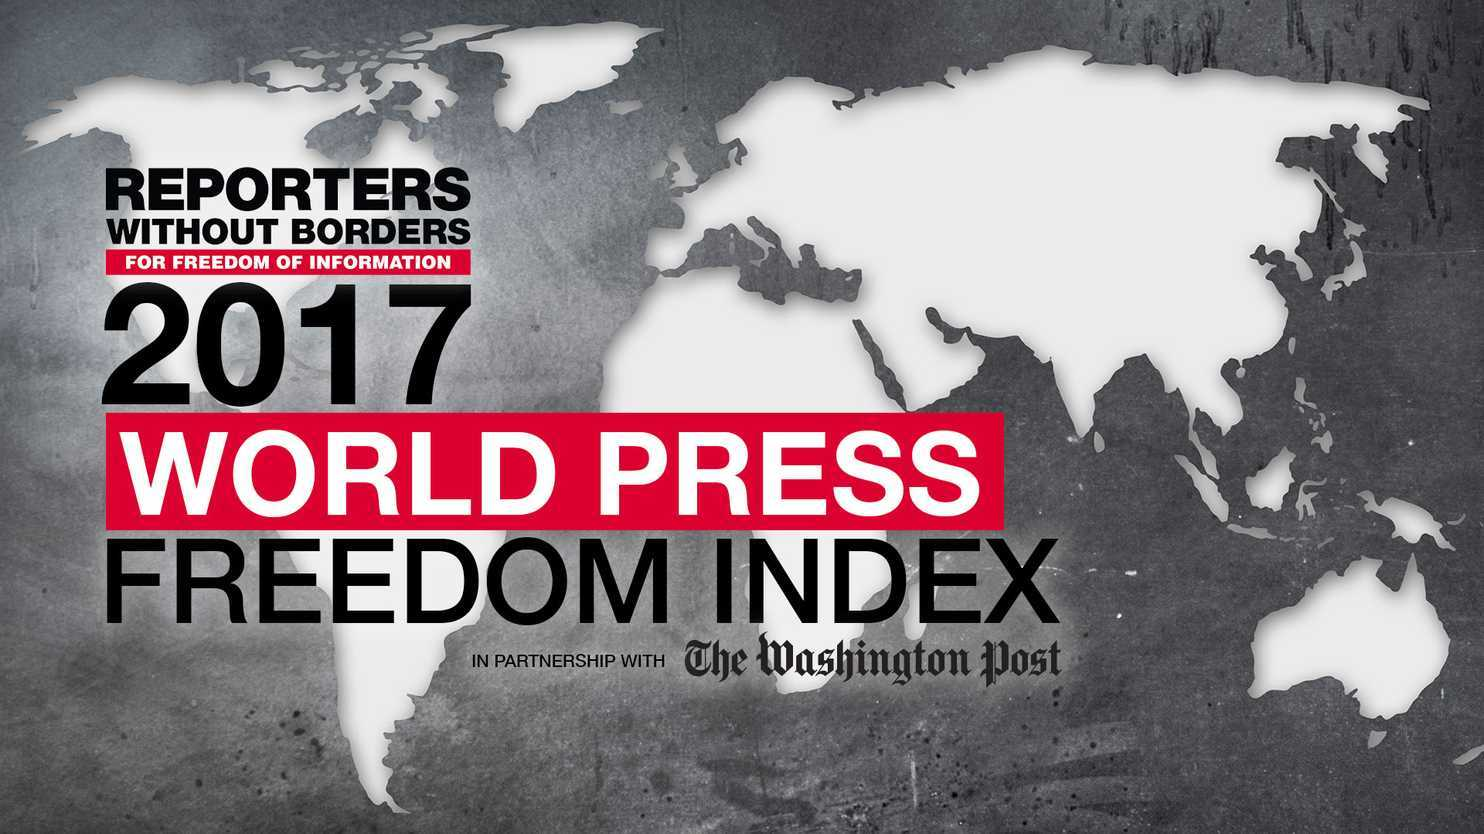 China ranked fifth worst in global press freedom index, is leading jailor of citizen journalists